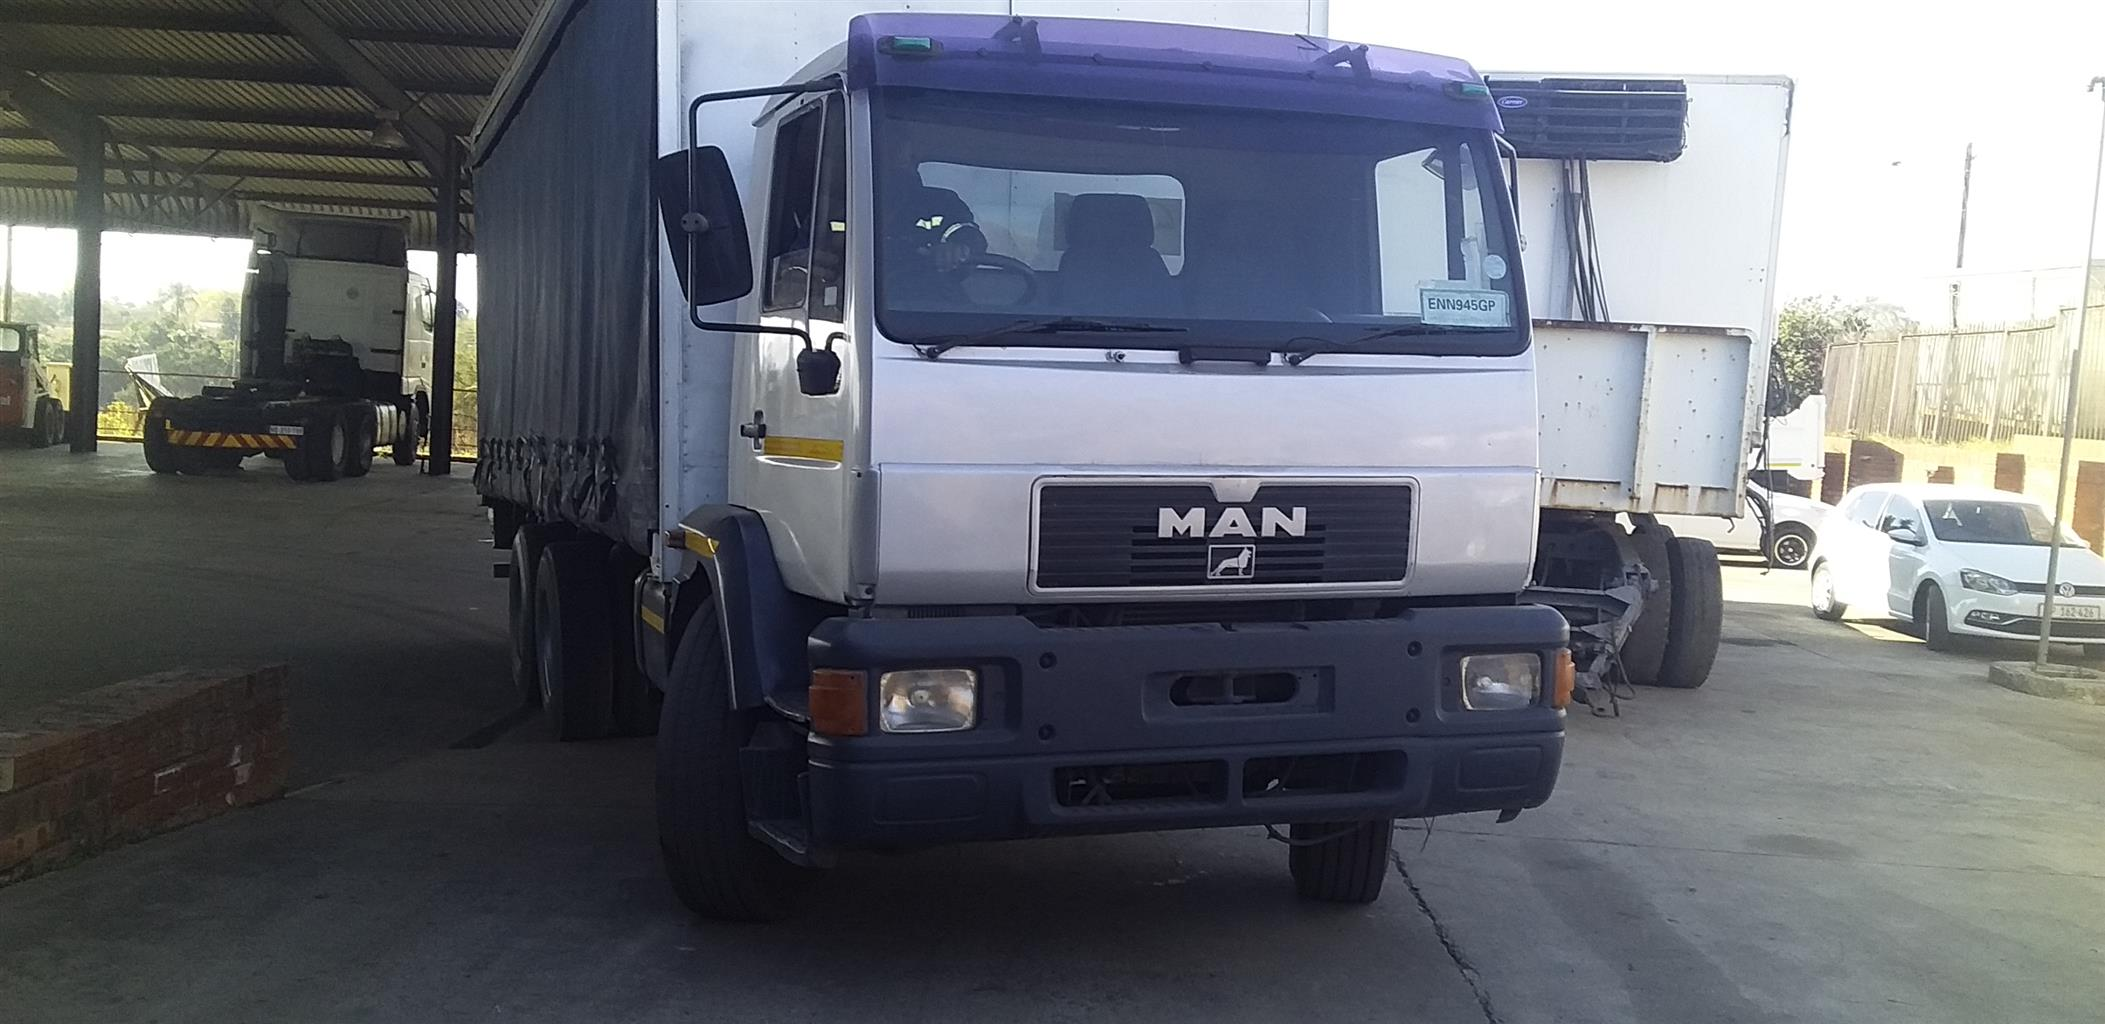 2001 MAN LM200 TAUTLINER BODY